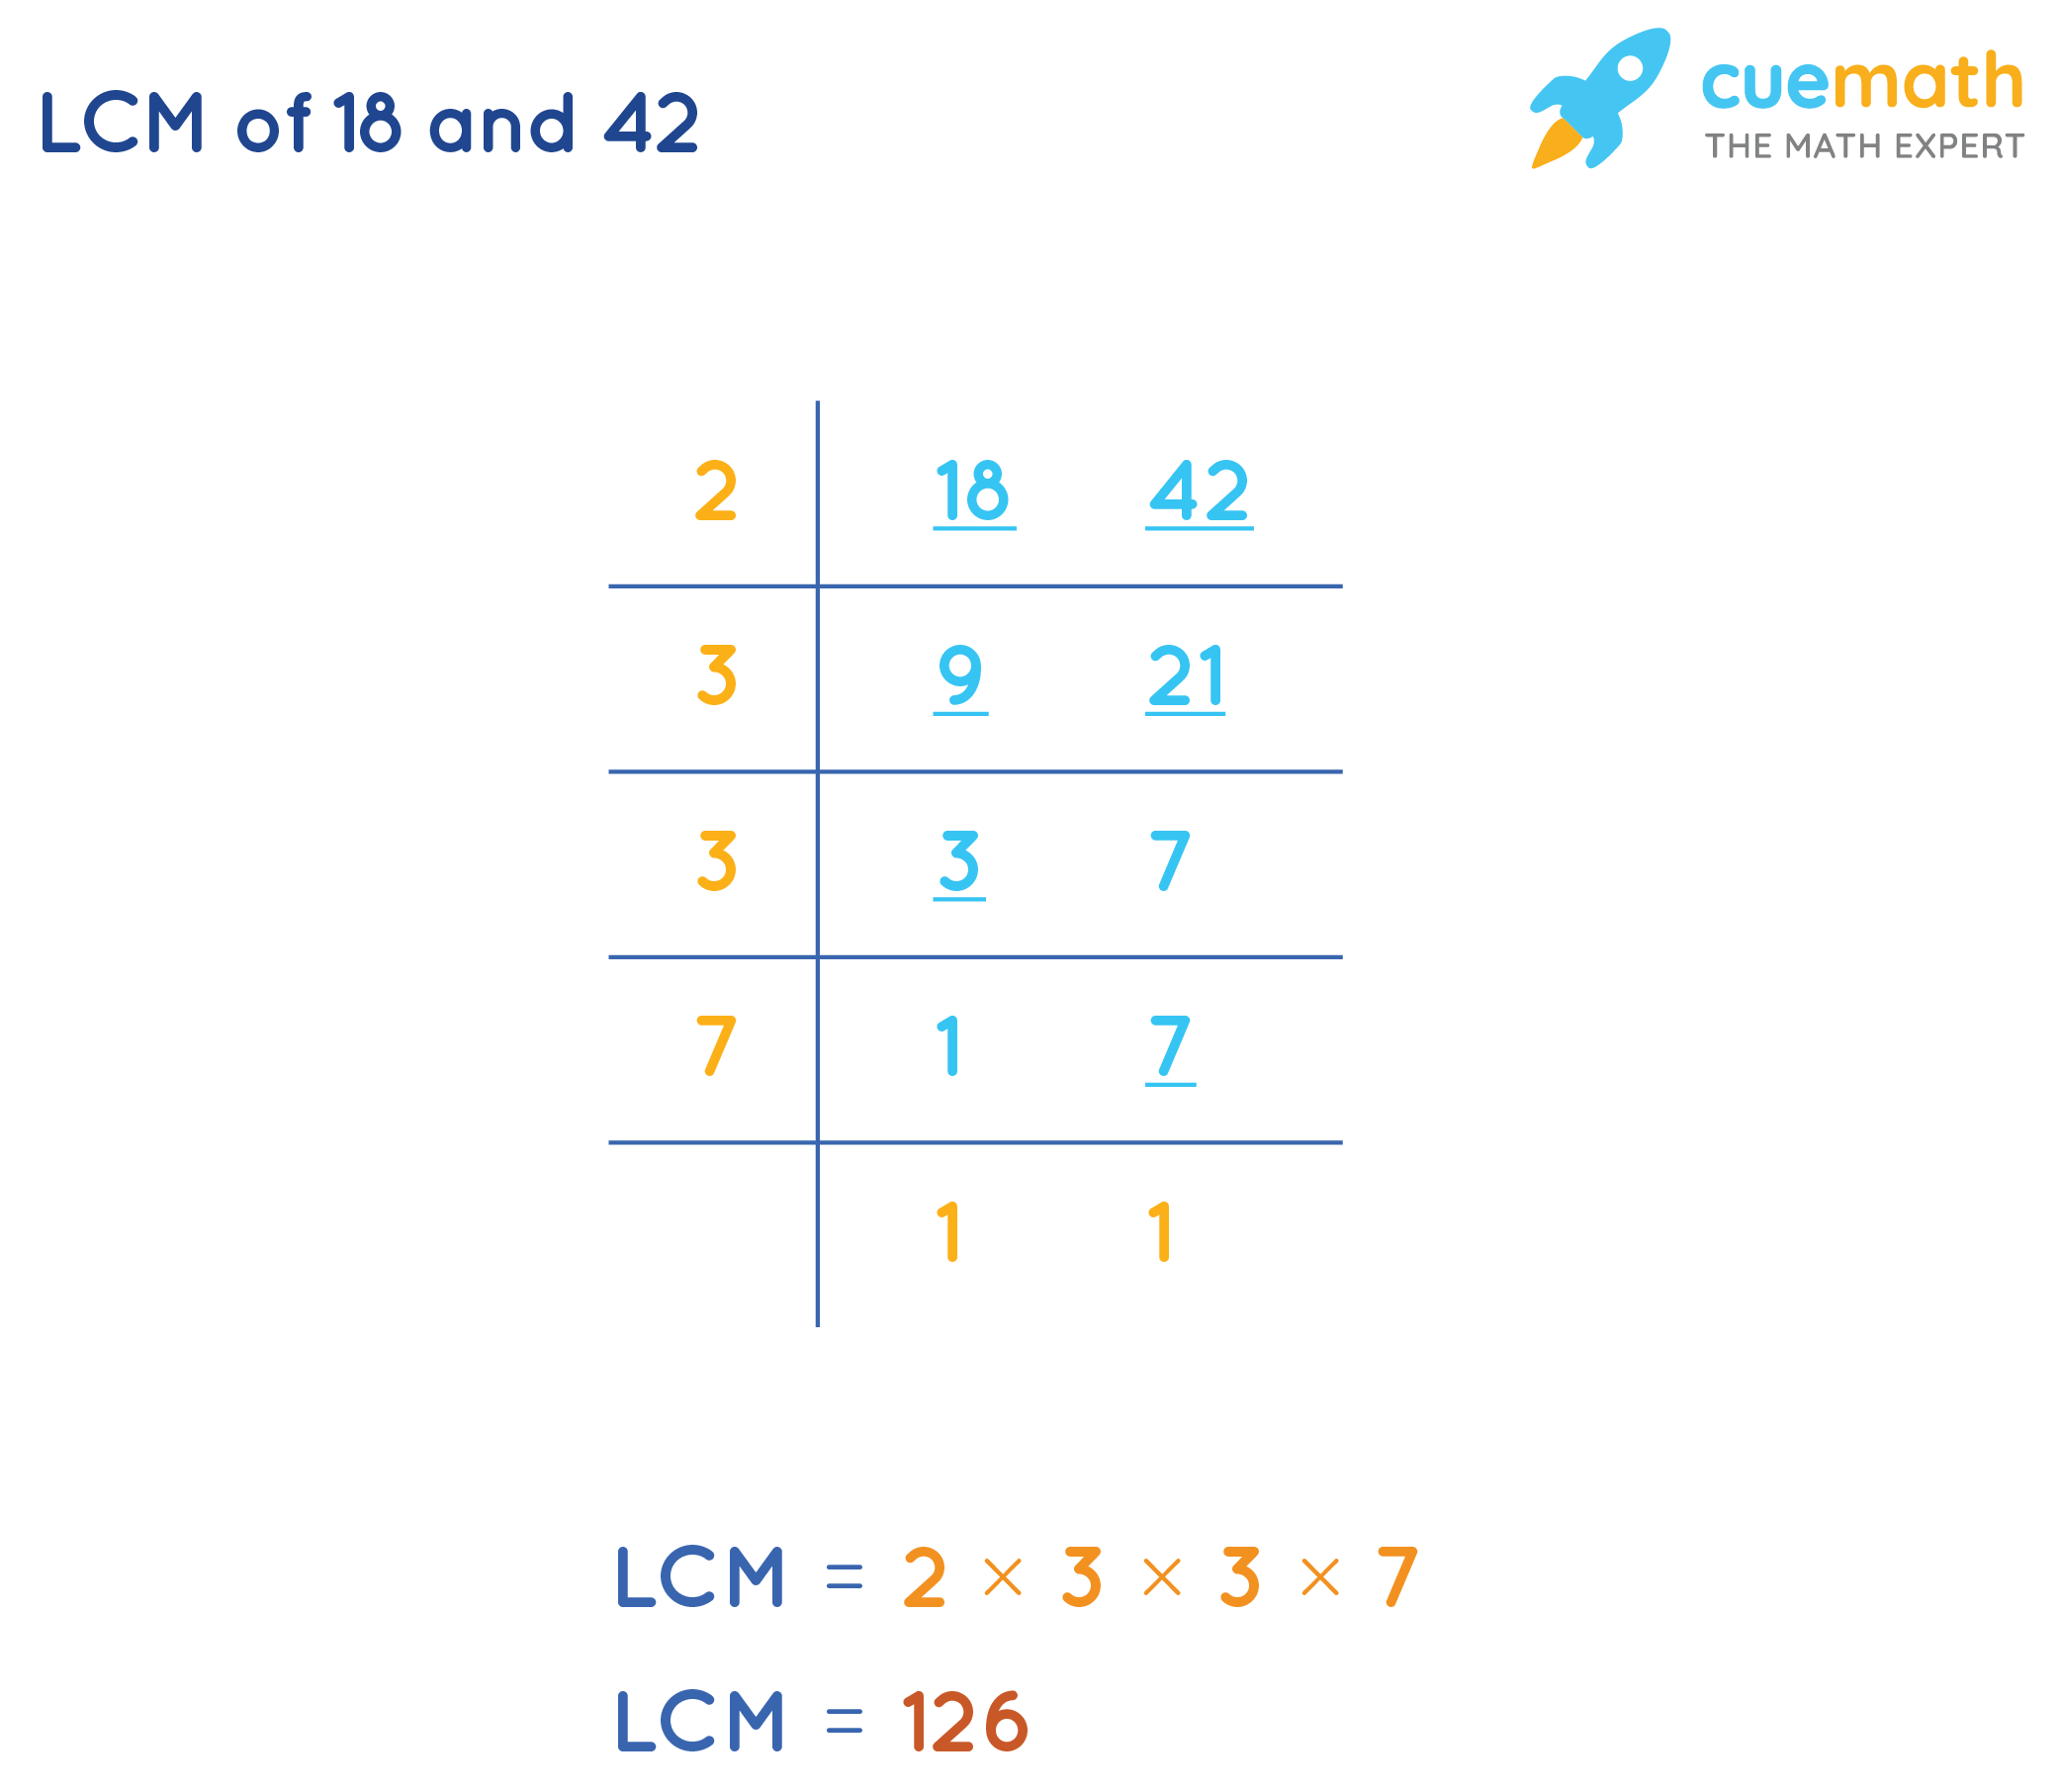 Find LCM of 18 and 42by Common Division Method